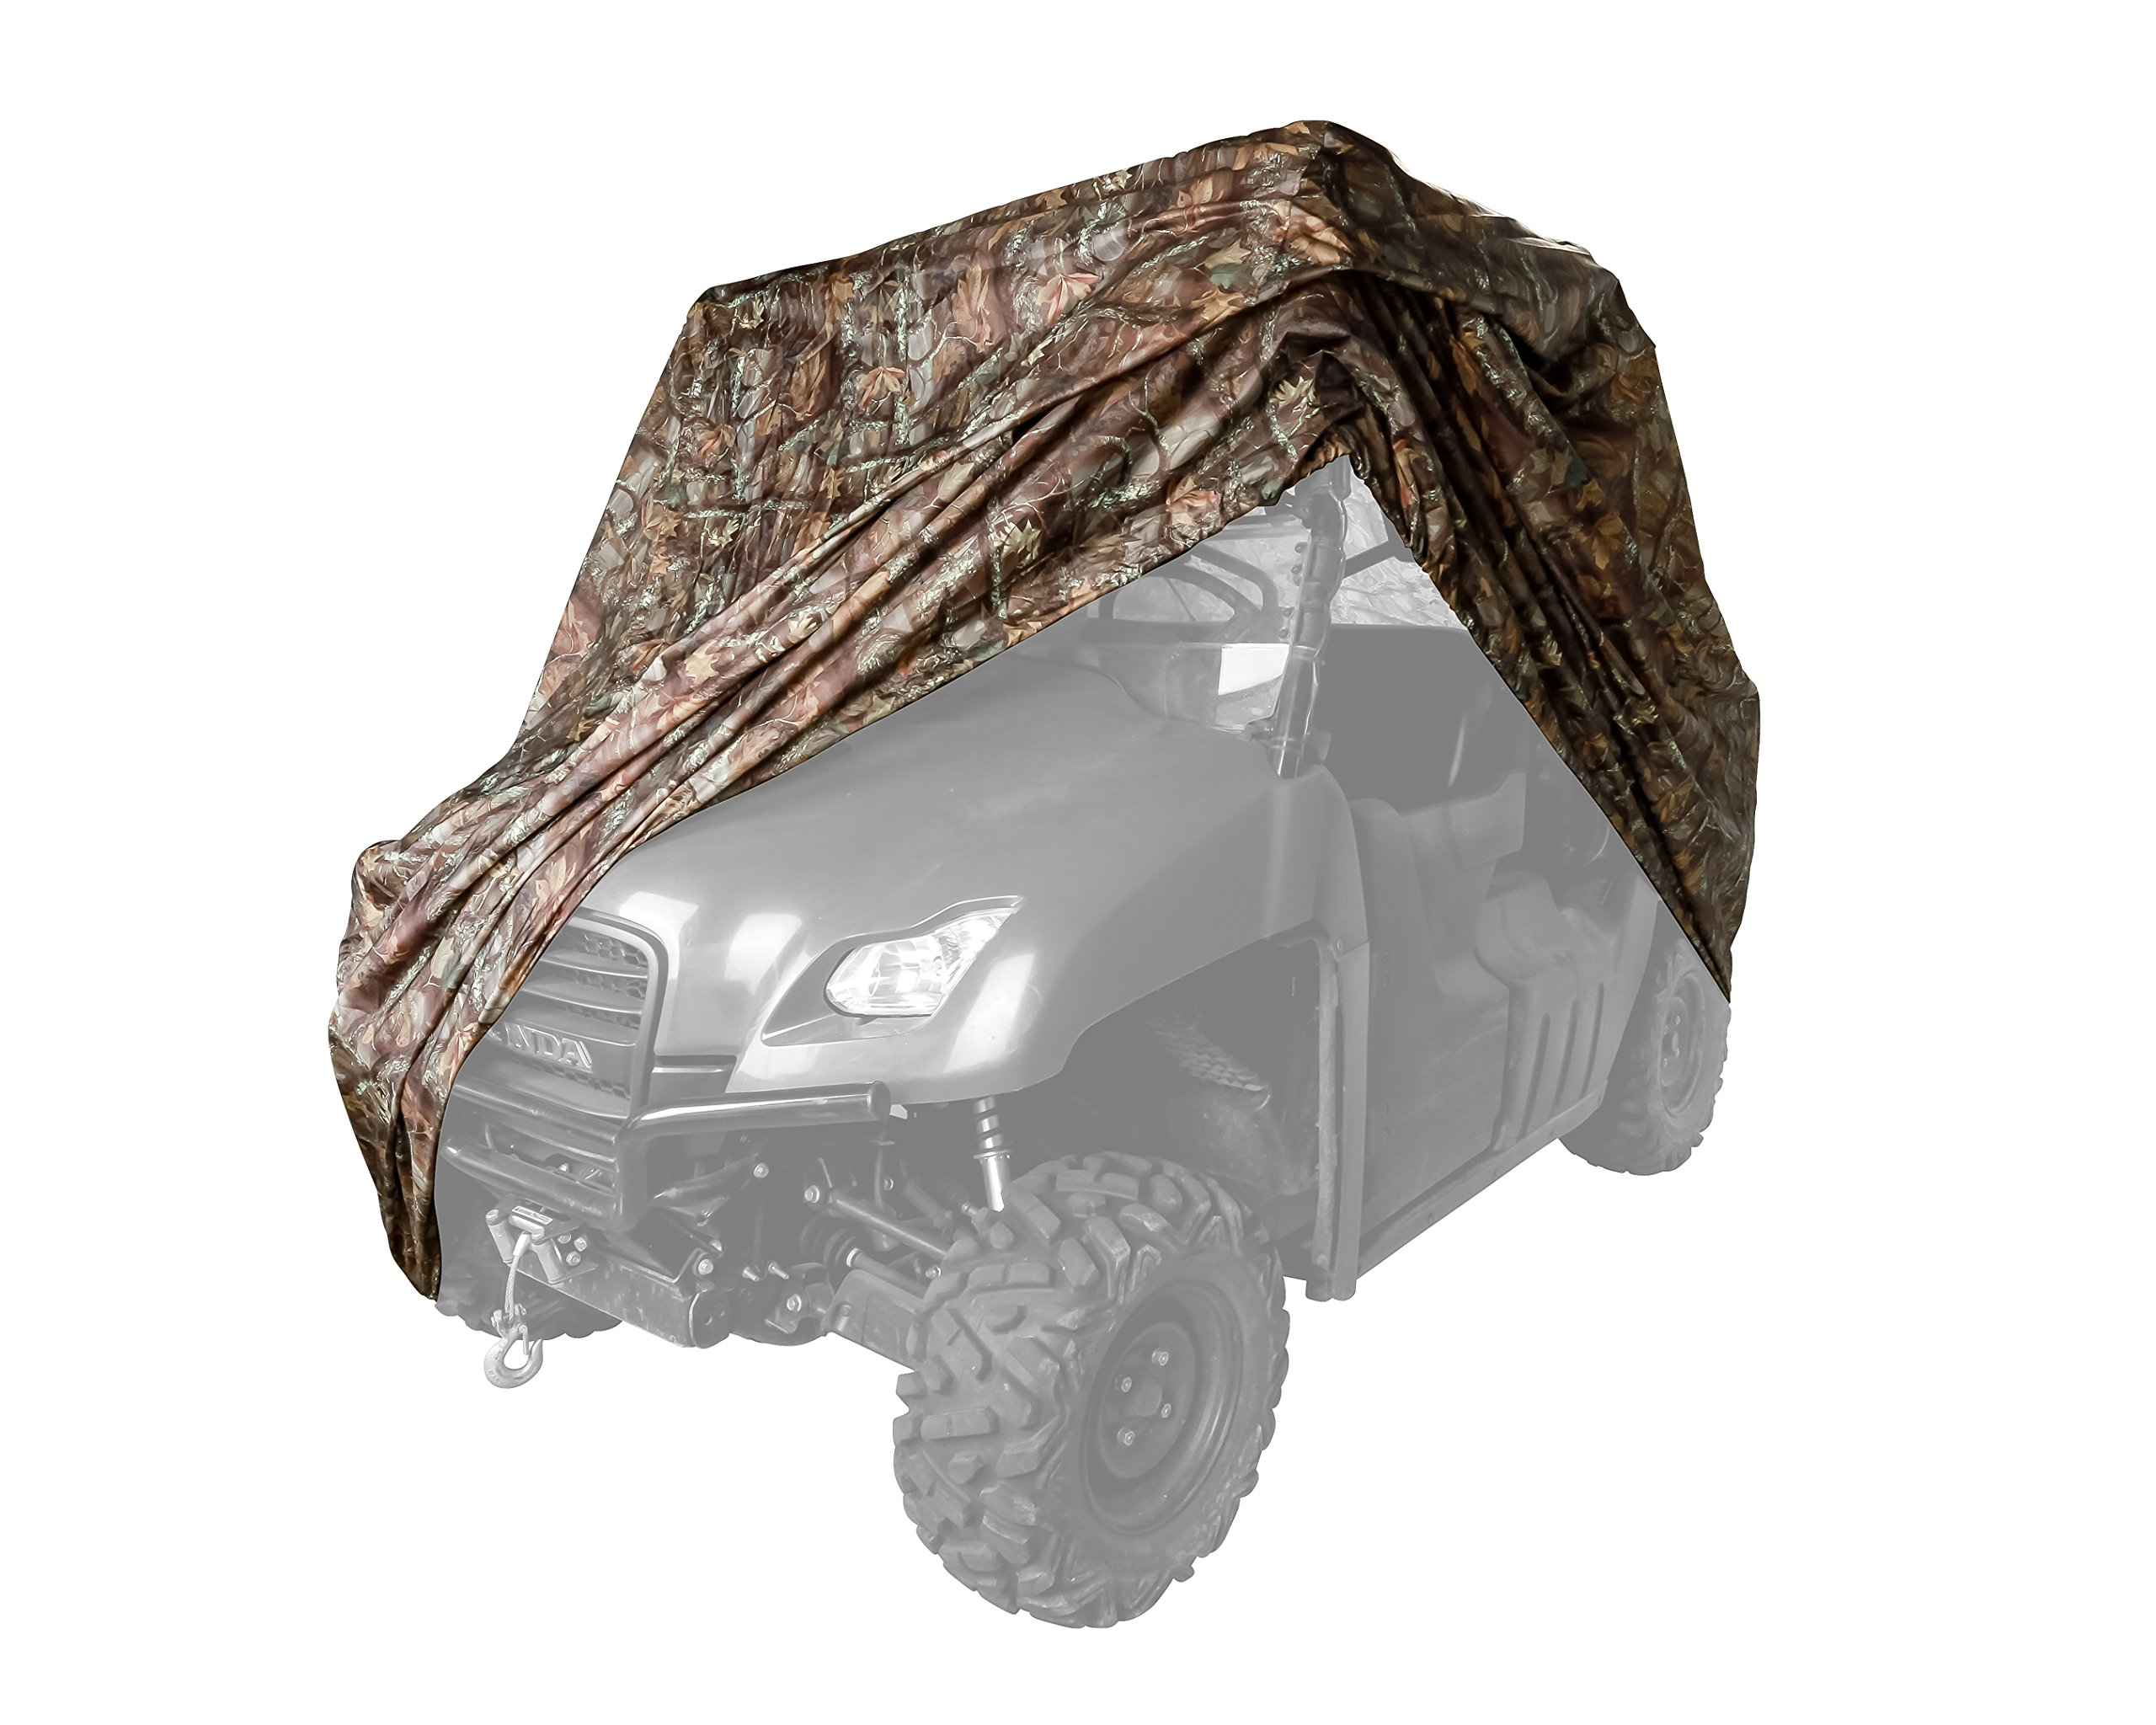 Black Boar Cover, Protect Your UTV from Rain, Snow, Dirt, Debris, Damaging UV Rays While in Storage (Jungle Camo) (66023)